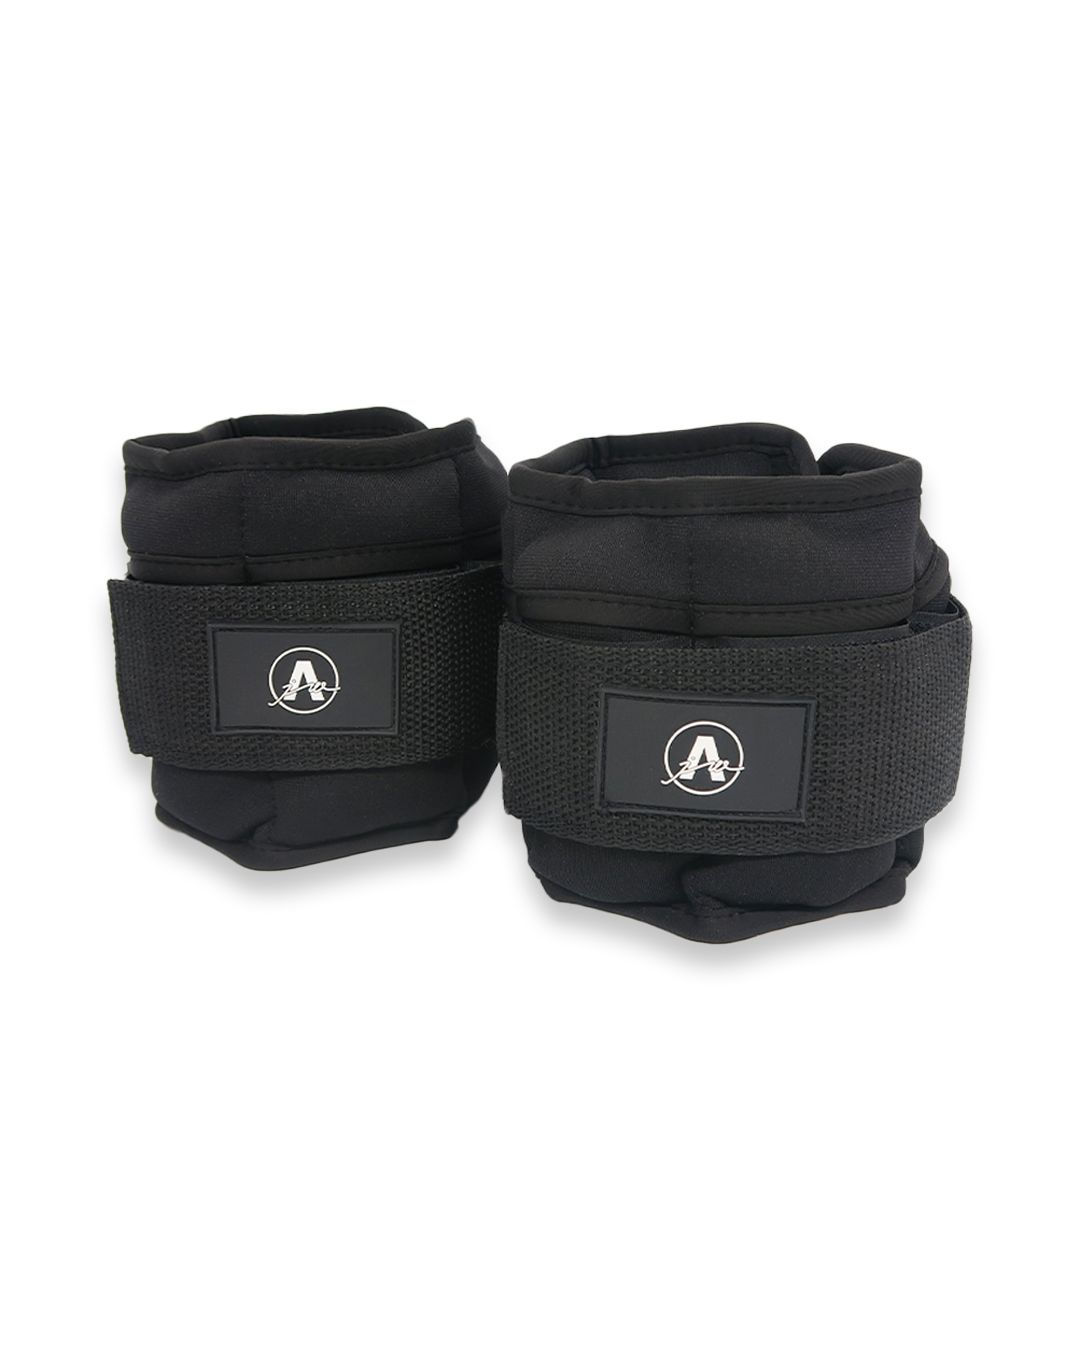 Ankle Weights - 1kg Set